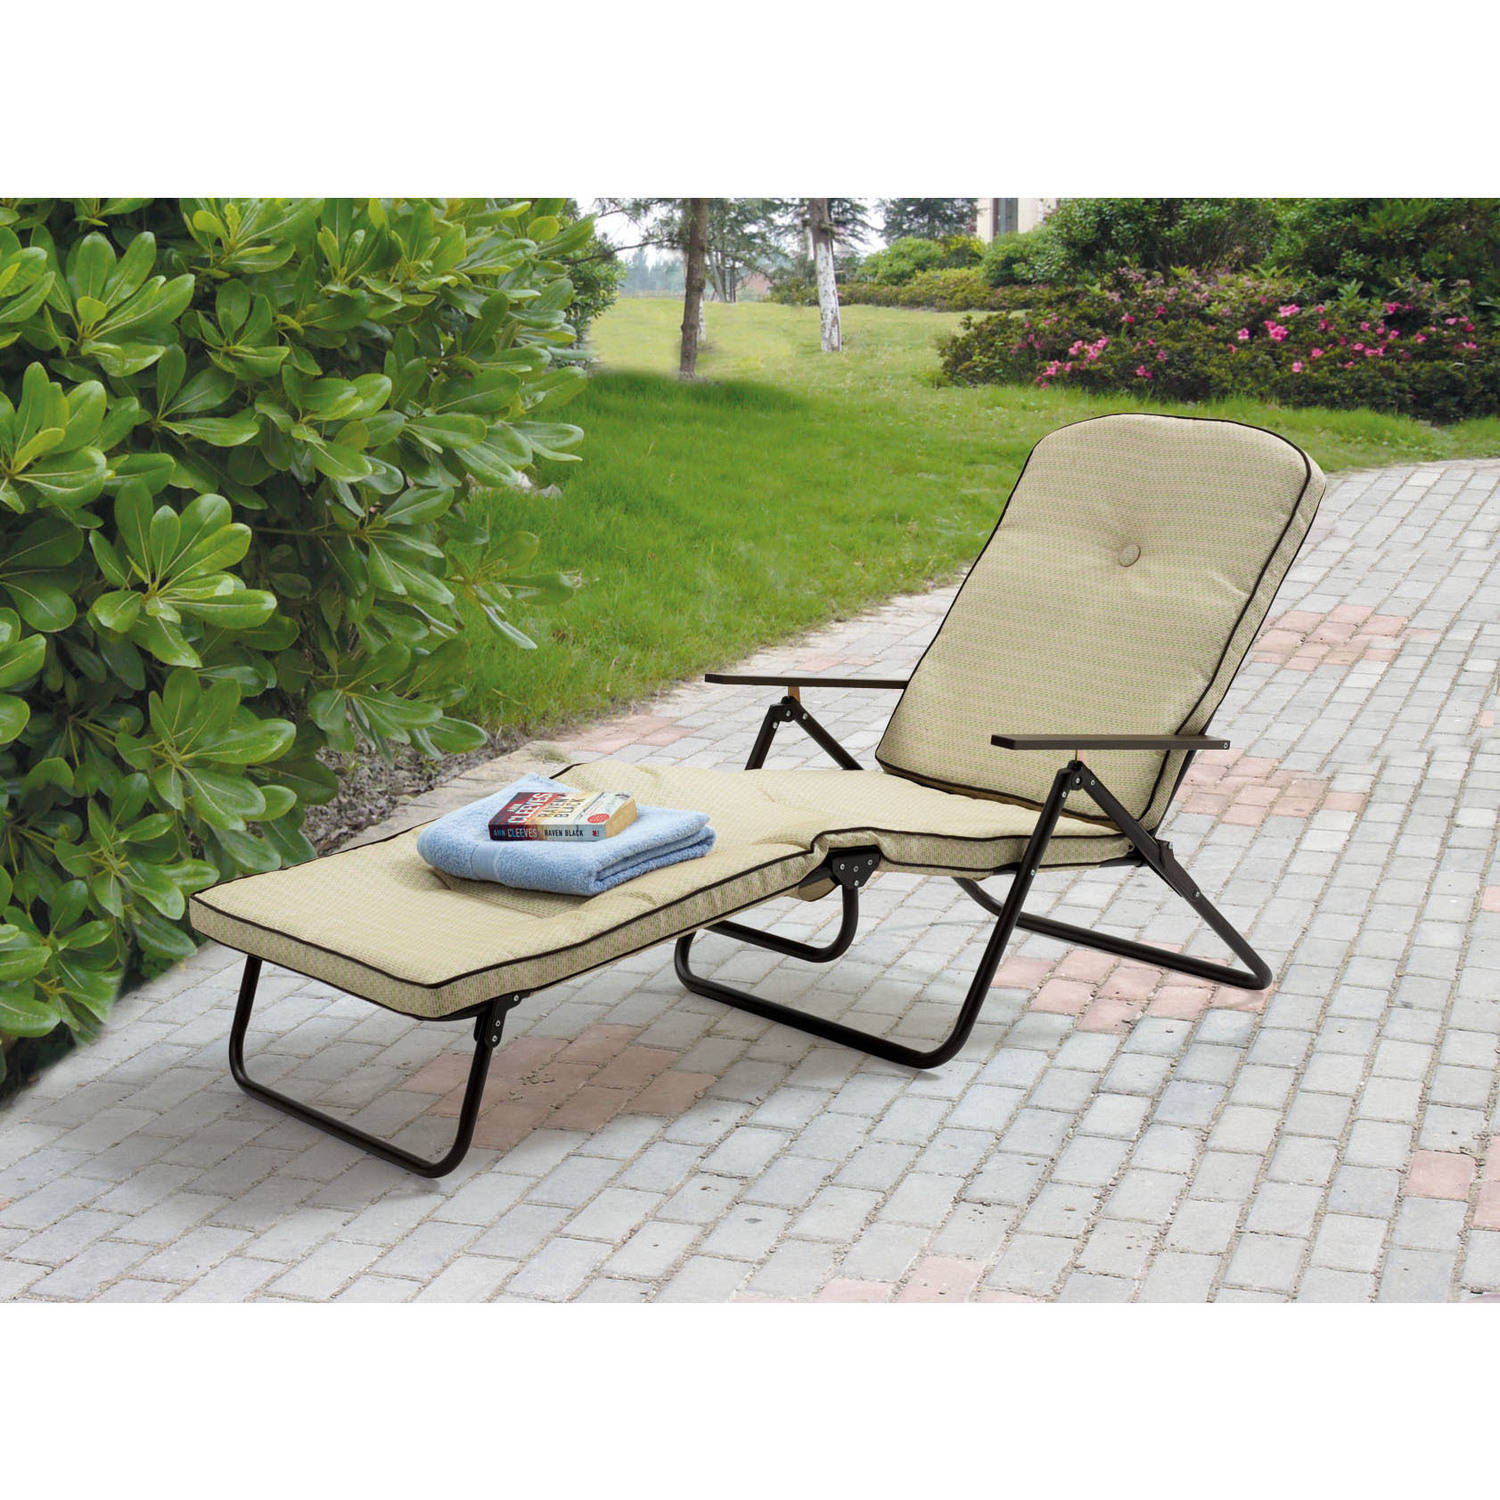 Details About Mainstays Sand Dune Outdoor Padded Folding Chaise Lounge Tan